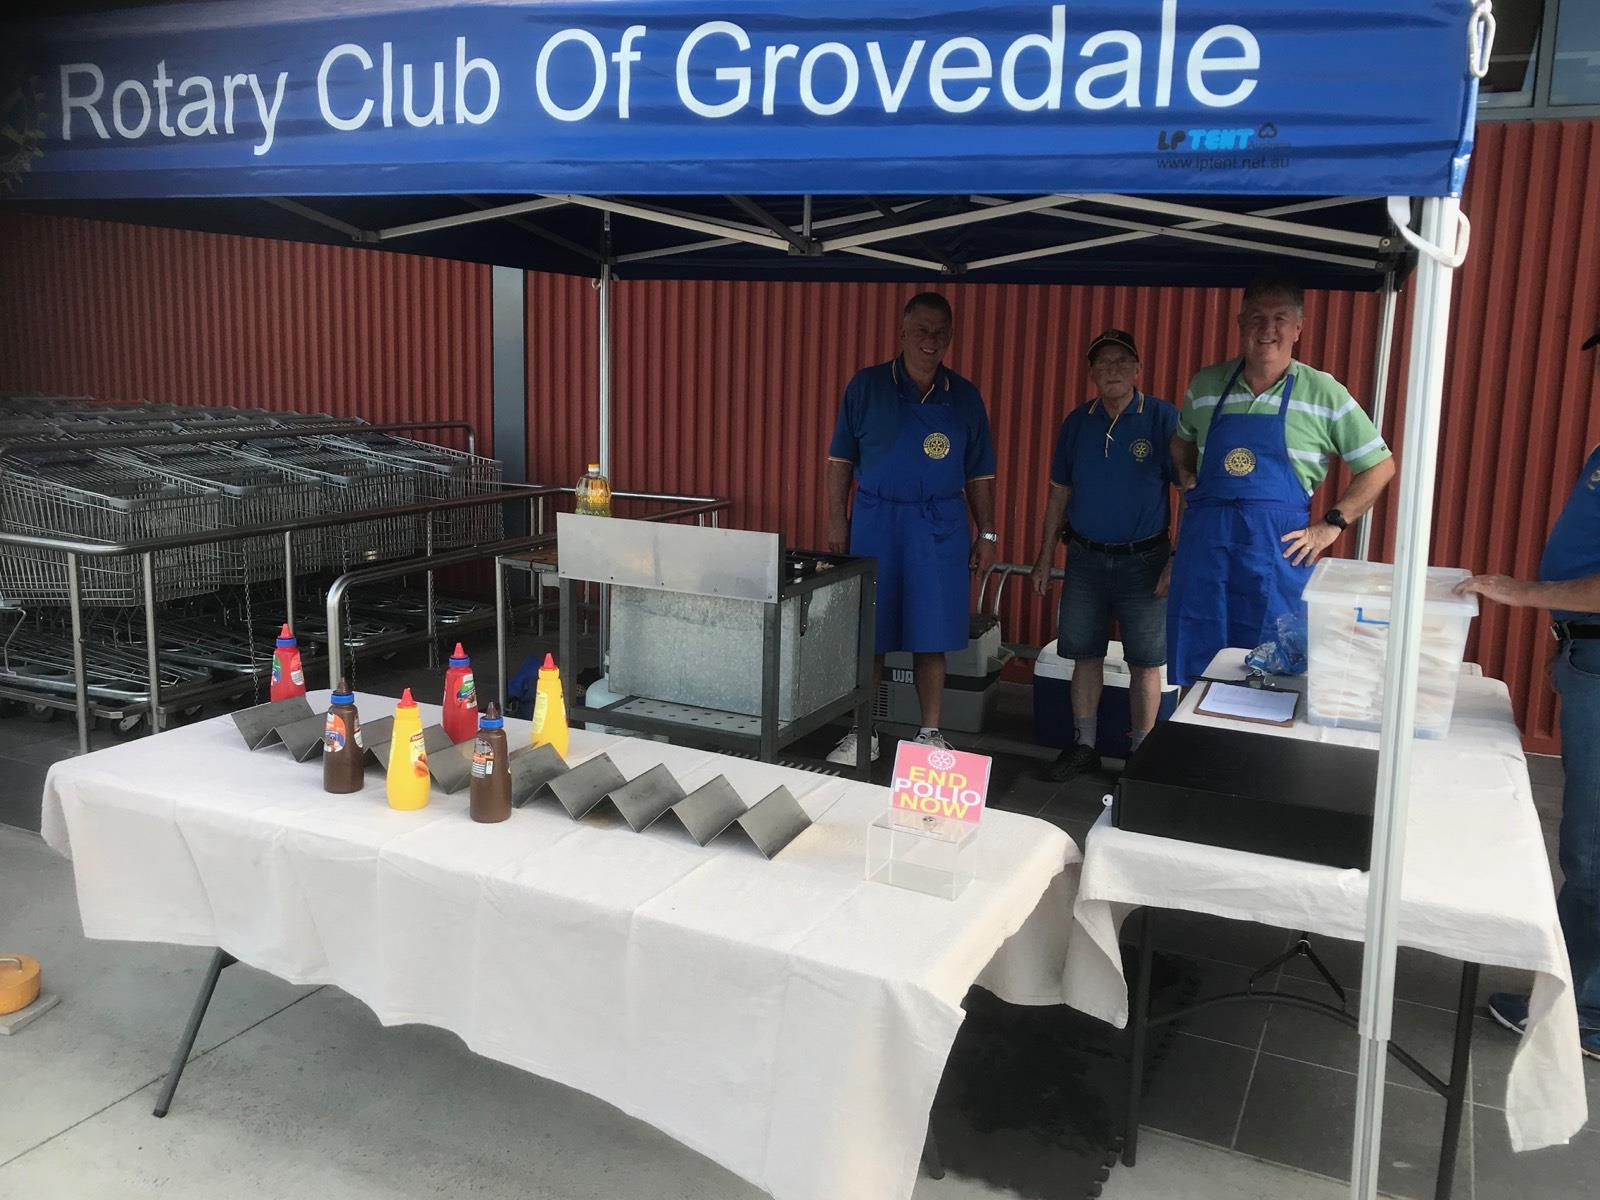 Grovedale dating